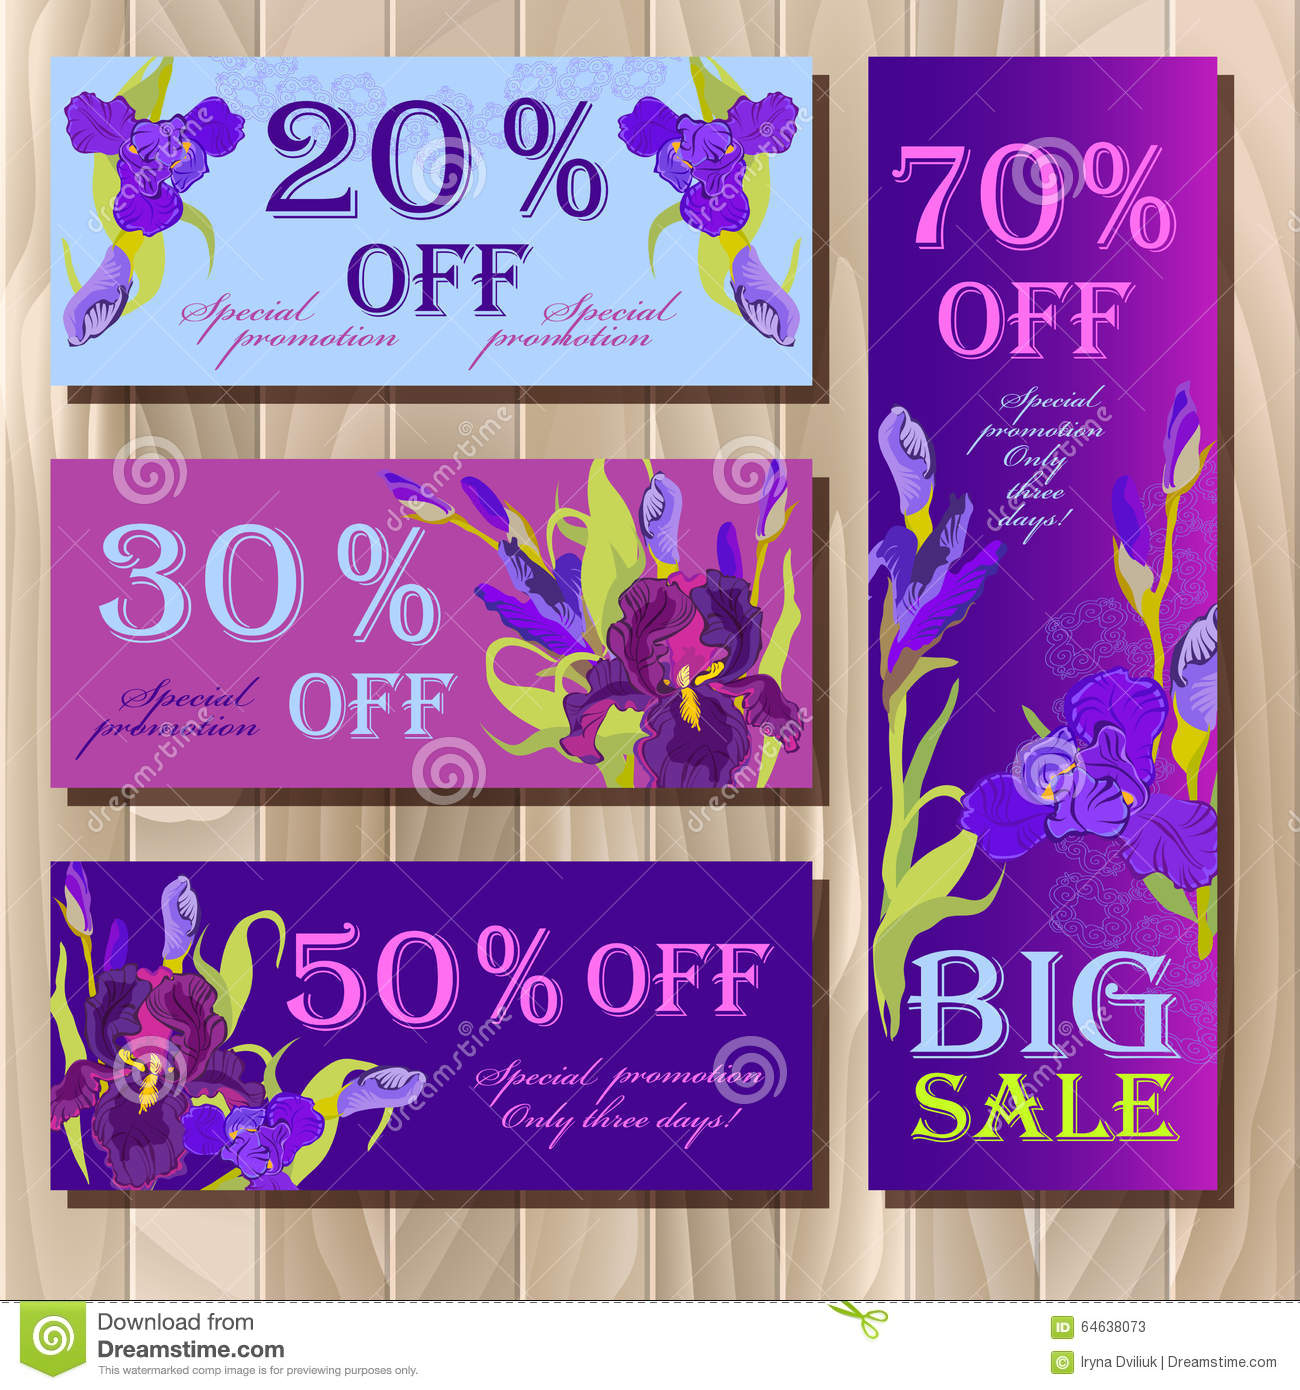 Flowers for dreams coupon code